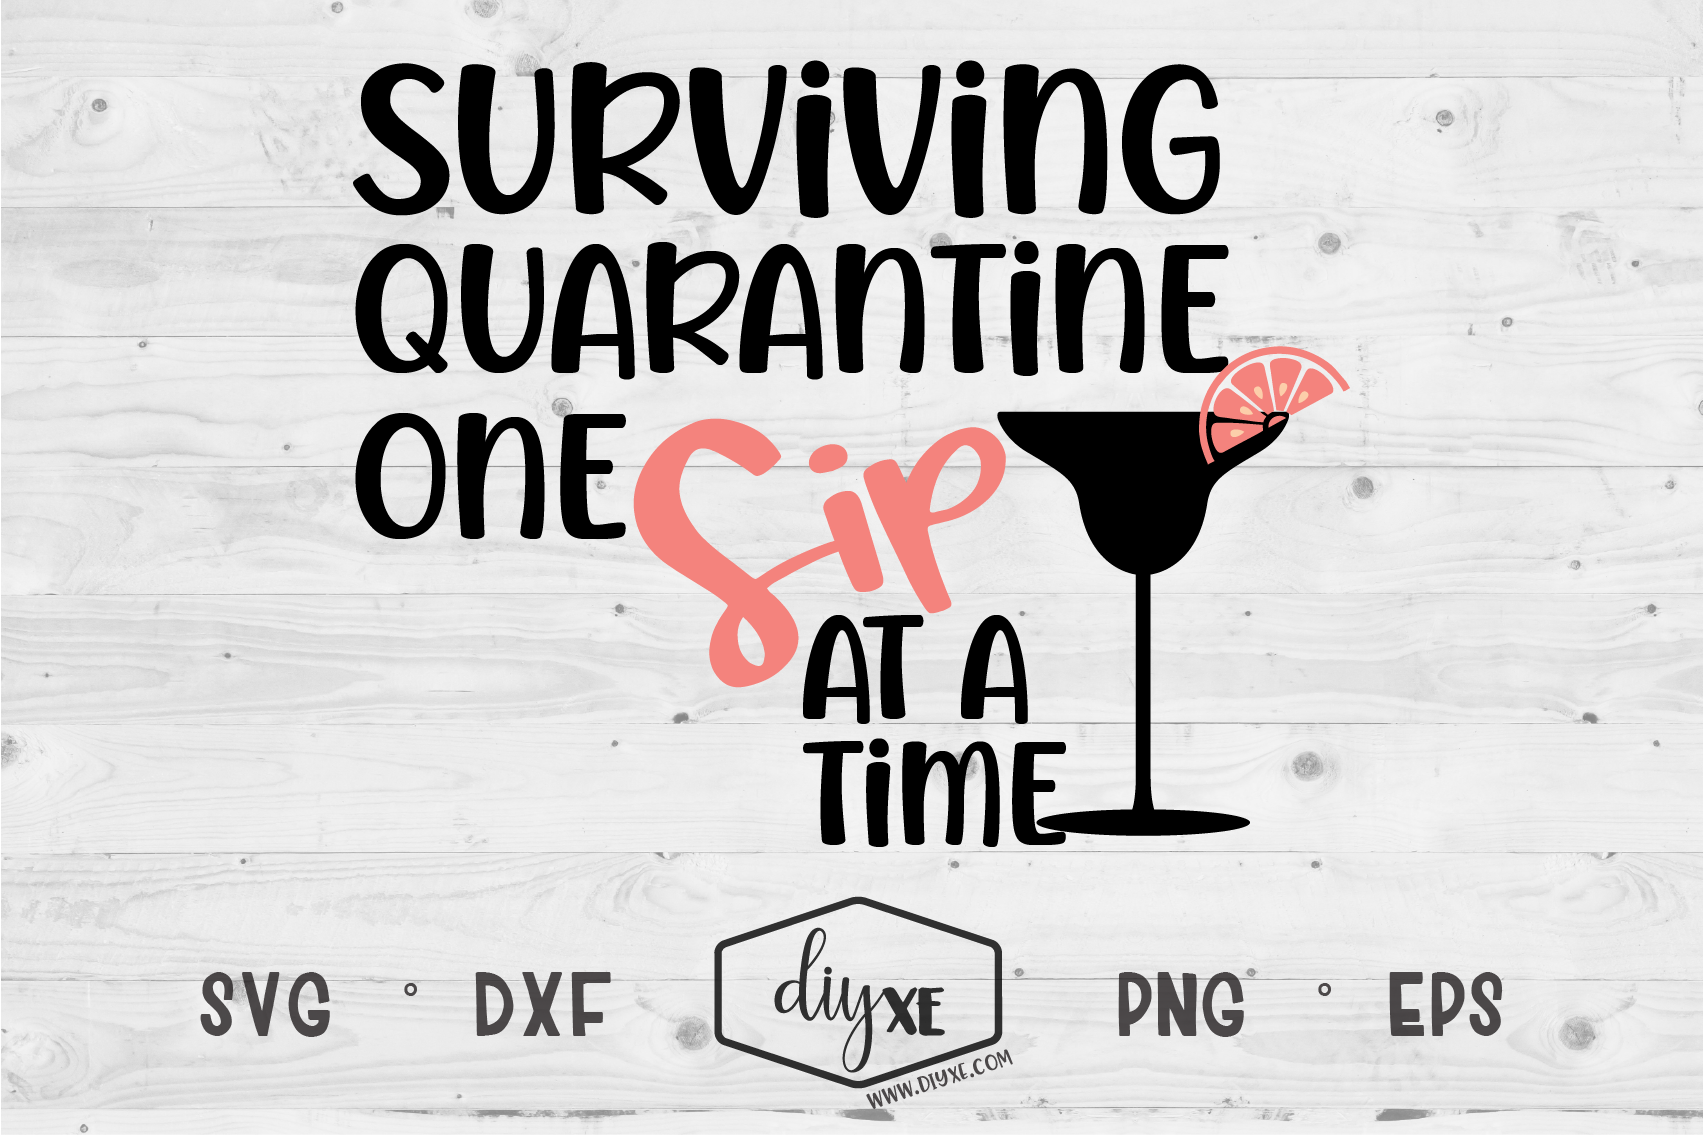 One Sip At A Time A Quarantine Svg Cut File By Diyxe